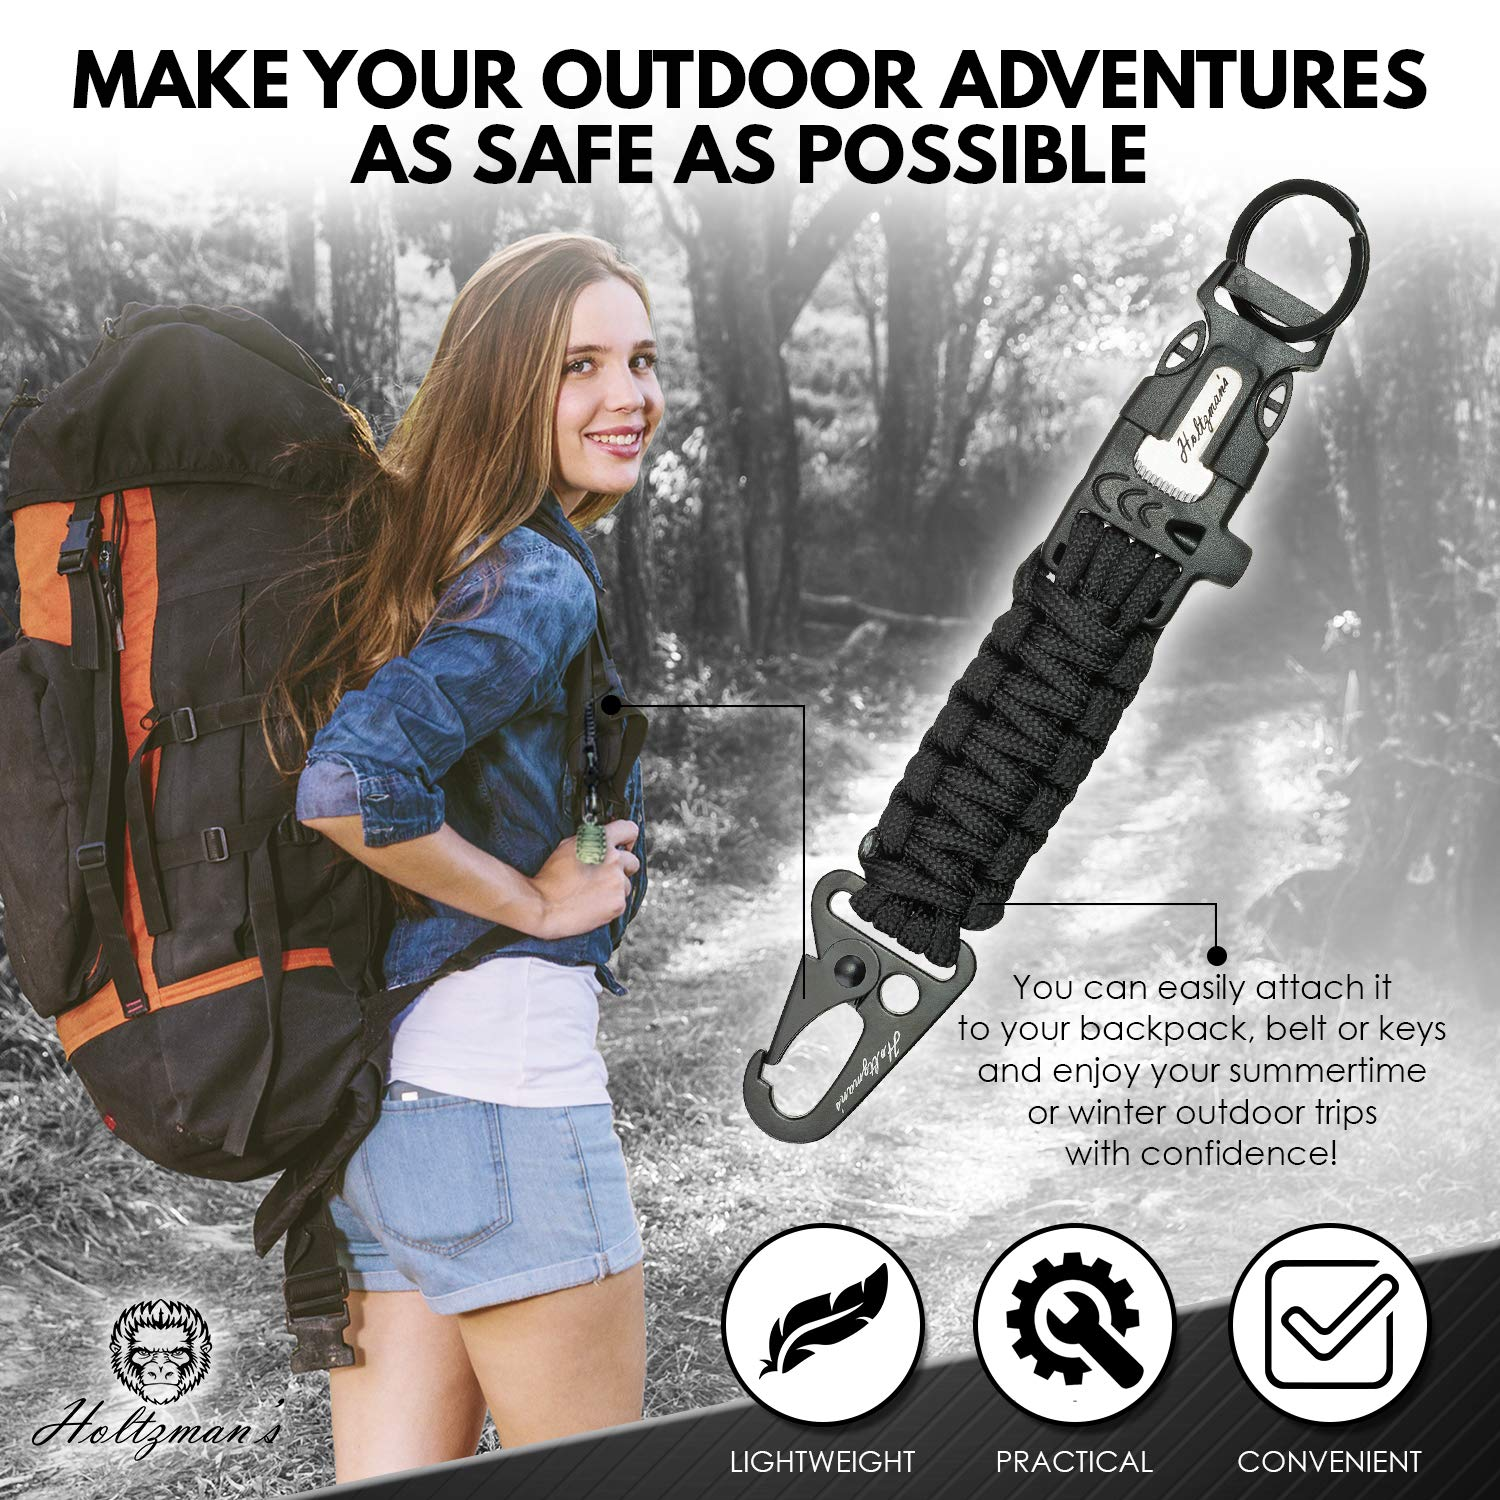 Ultimate 5-in-1 Paracord Keychain with Carabiner for Camping, Fishing, Hunting & Outdoor Emergencies | Multipurpose Survival Tool with Paracord, Emergency Whistle, Flint Rod, Cutting Tool & Key Ring by Holtzman's Gorilla Survival (Image #3)